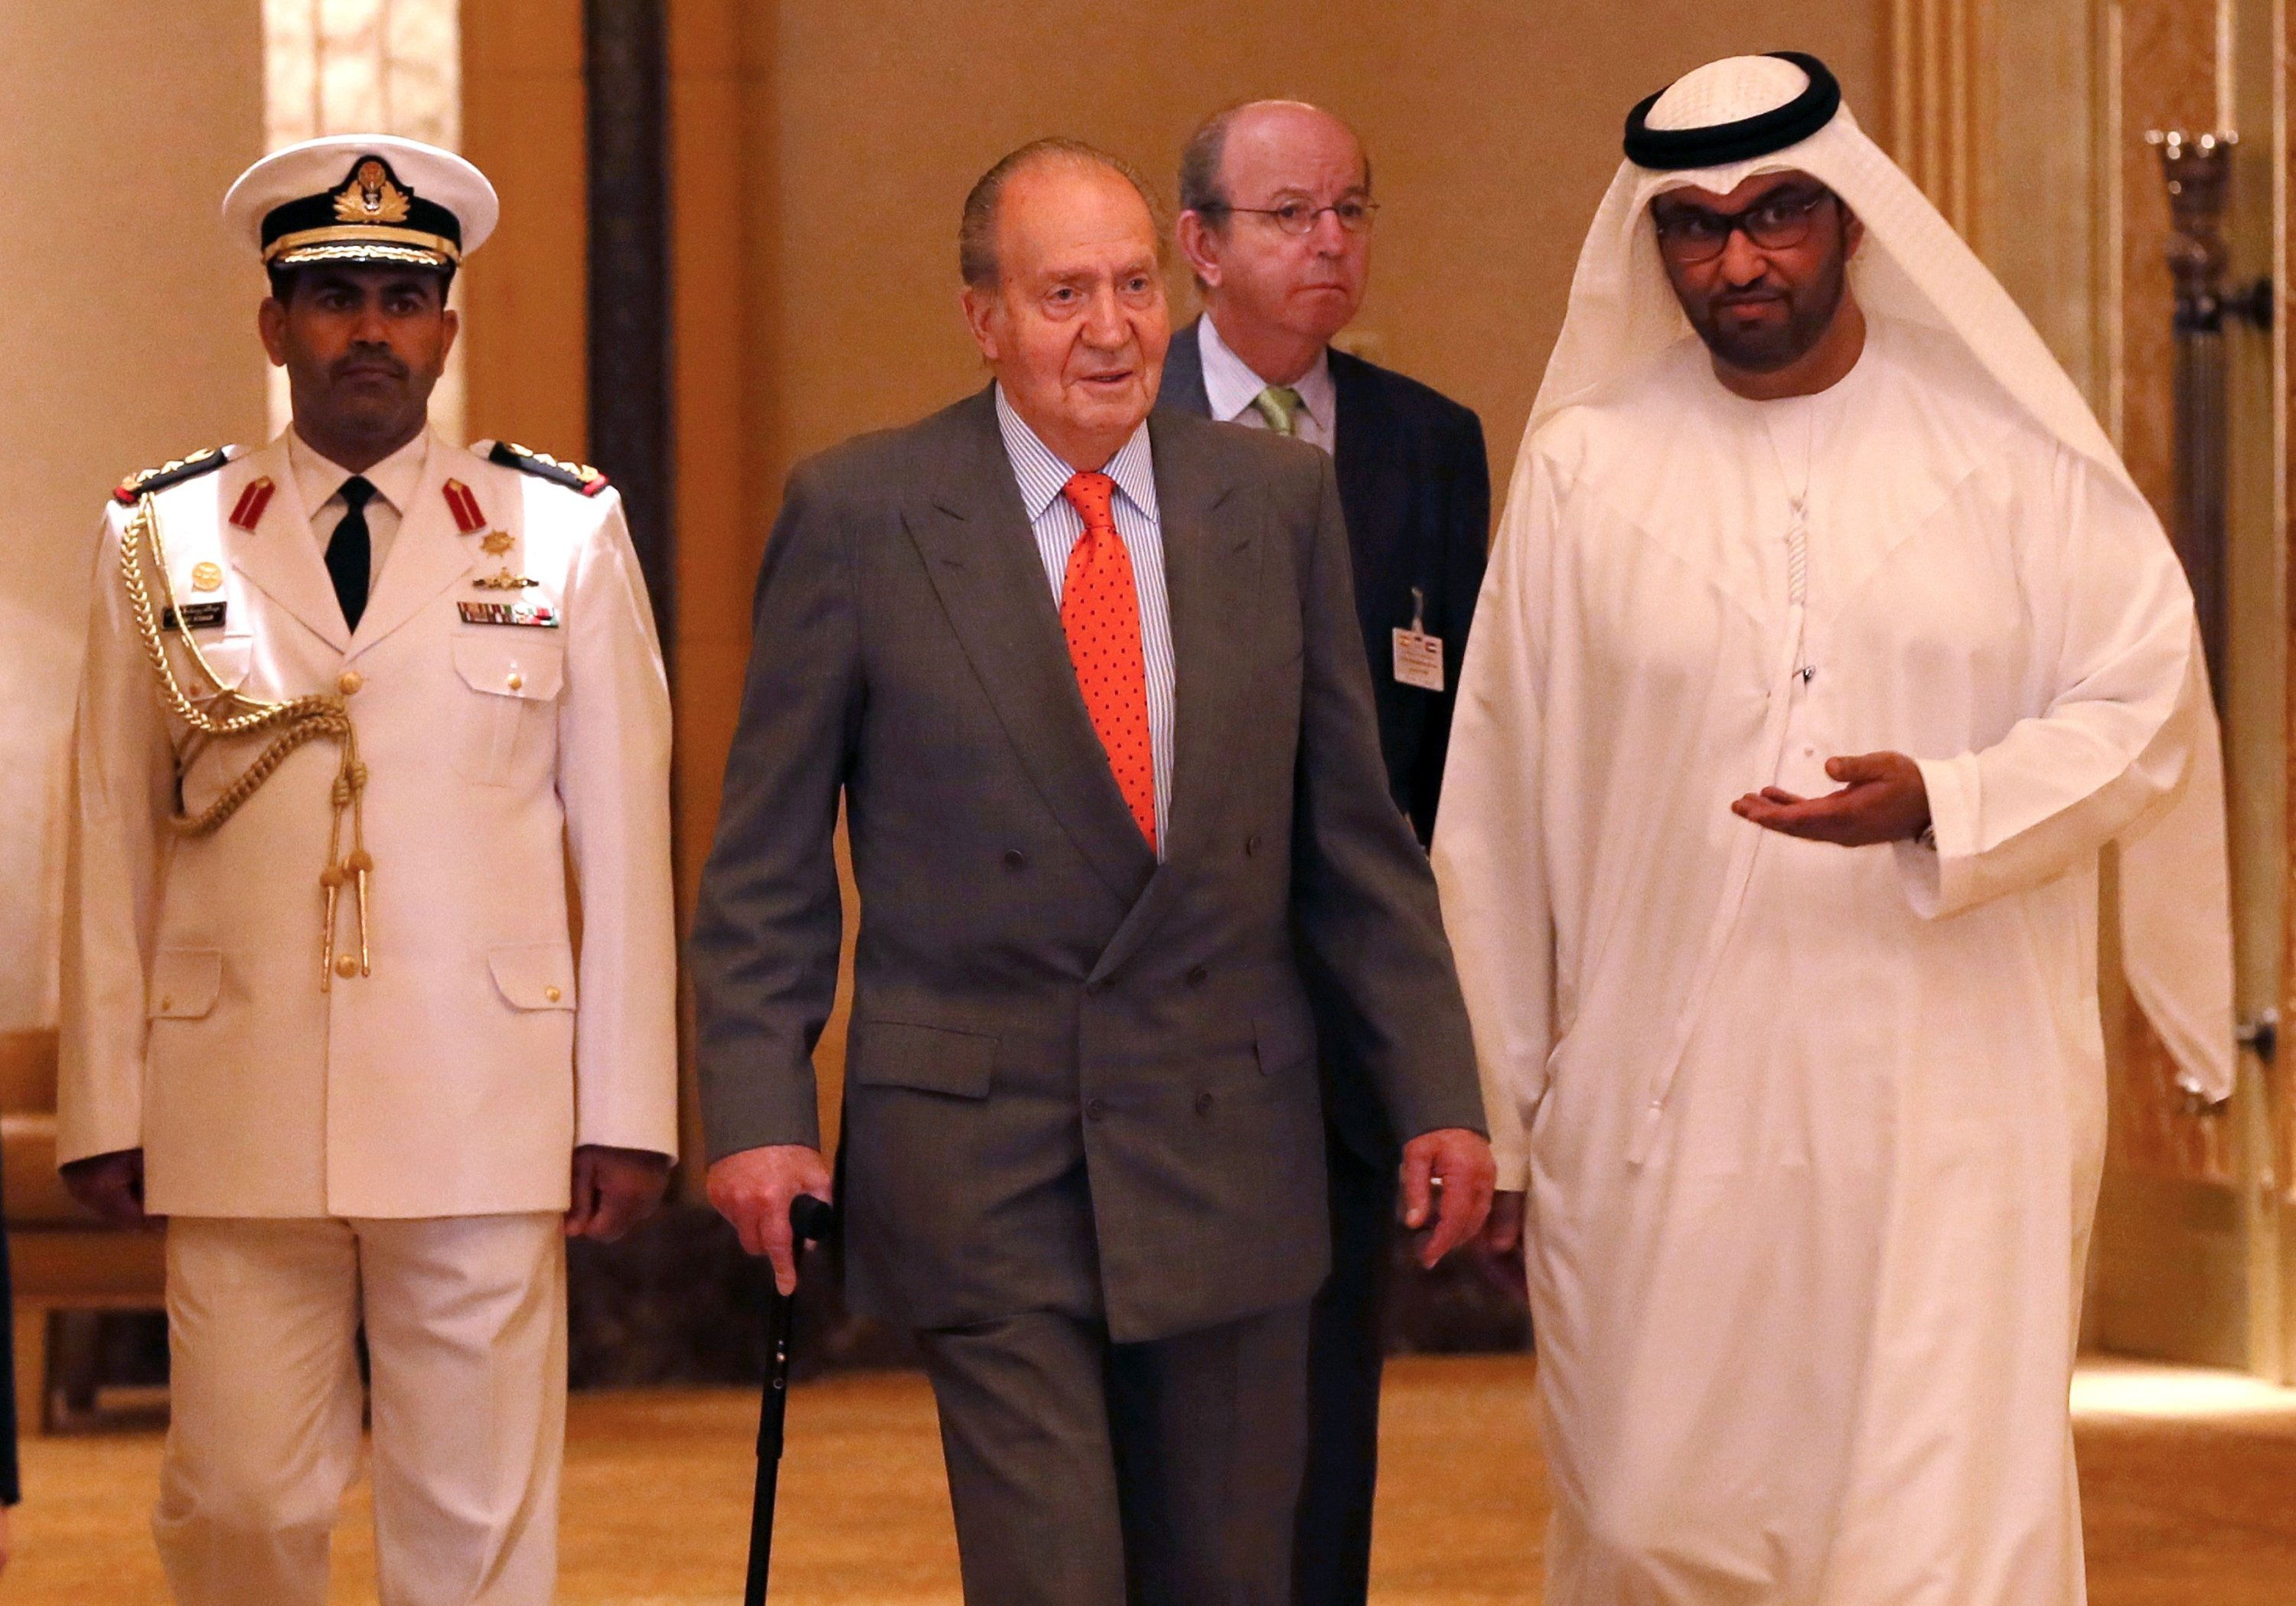 Mystery no more: Spain's ex-king Juan Carlos emerges in UAE amid financial  probes | Daily Sabah